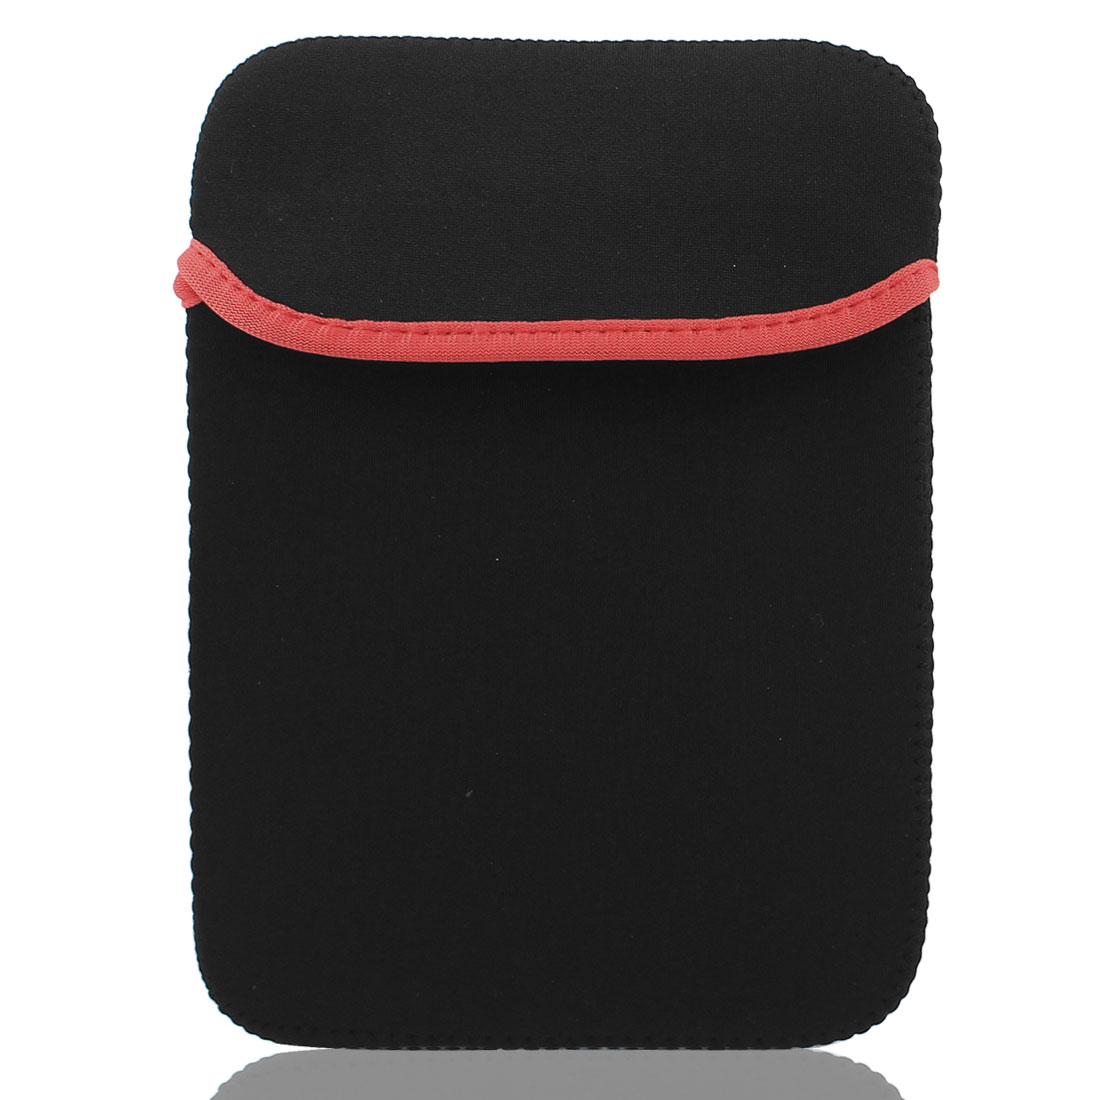 "8"" Tablet eBook Reader Neoprene Sleeve Case Bag Pouch Cover Protector Black Red"